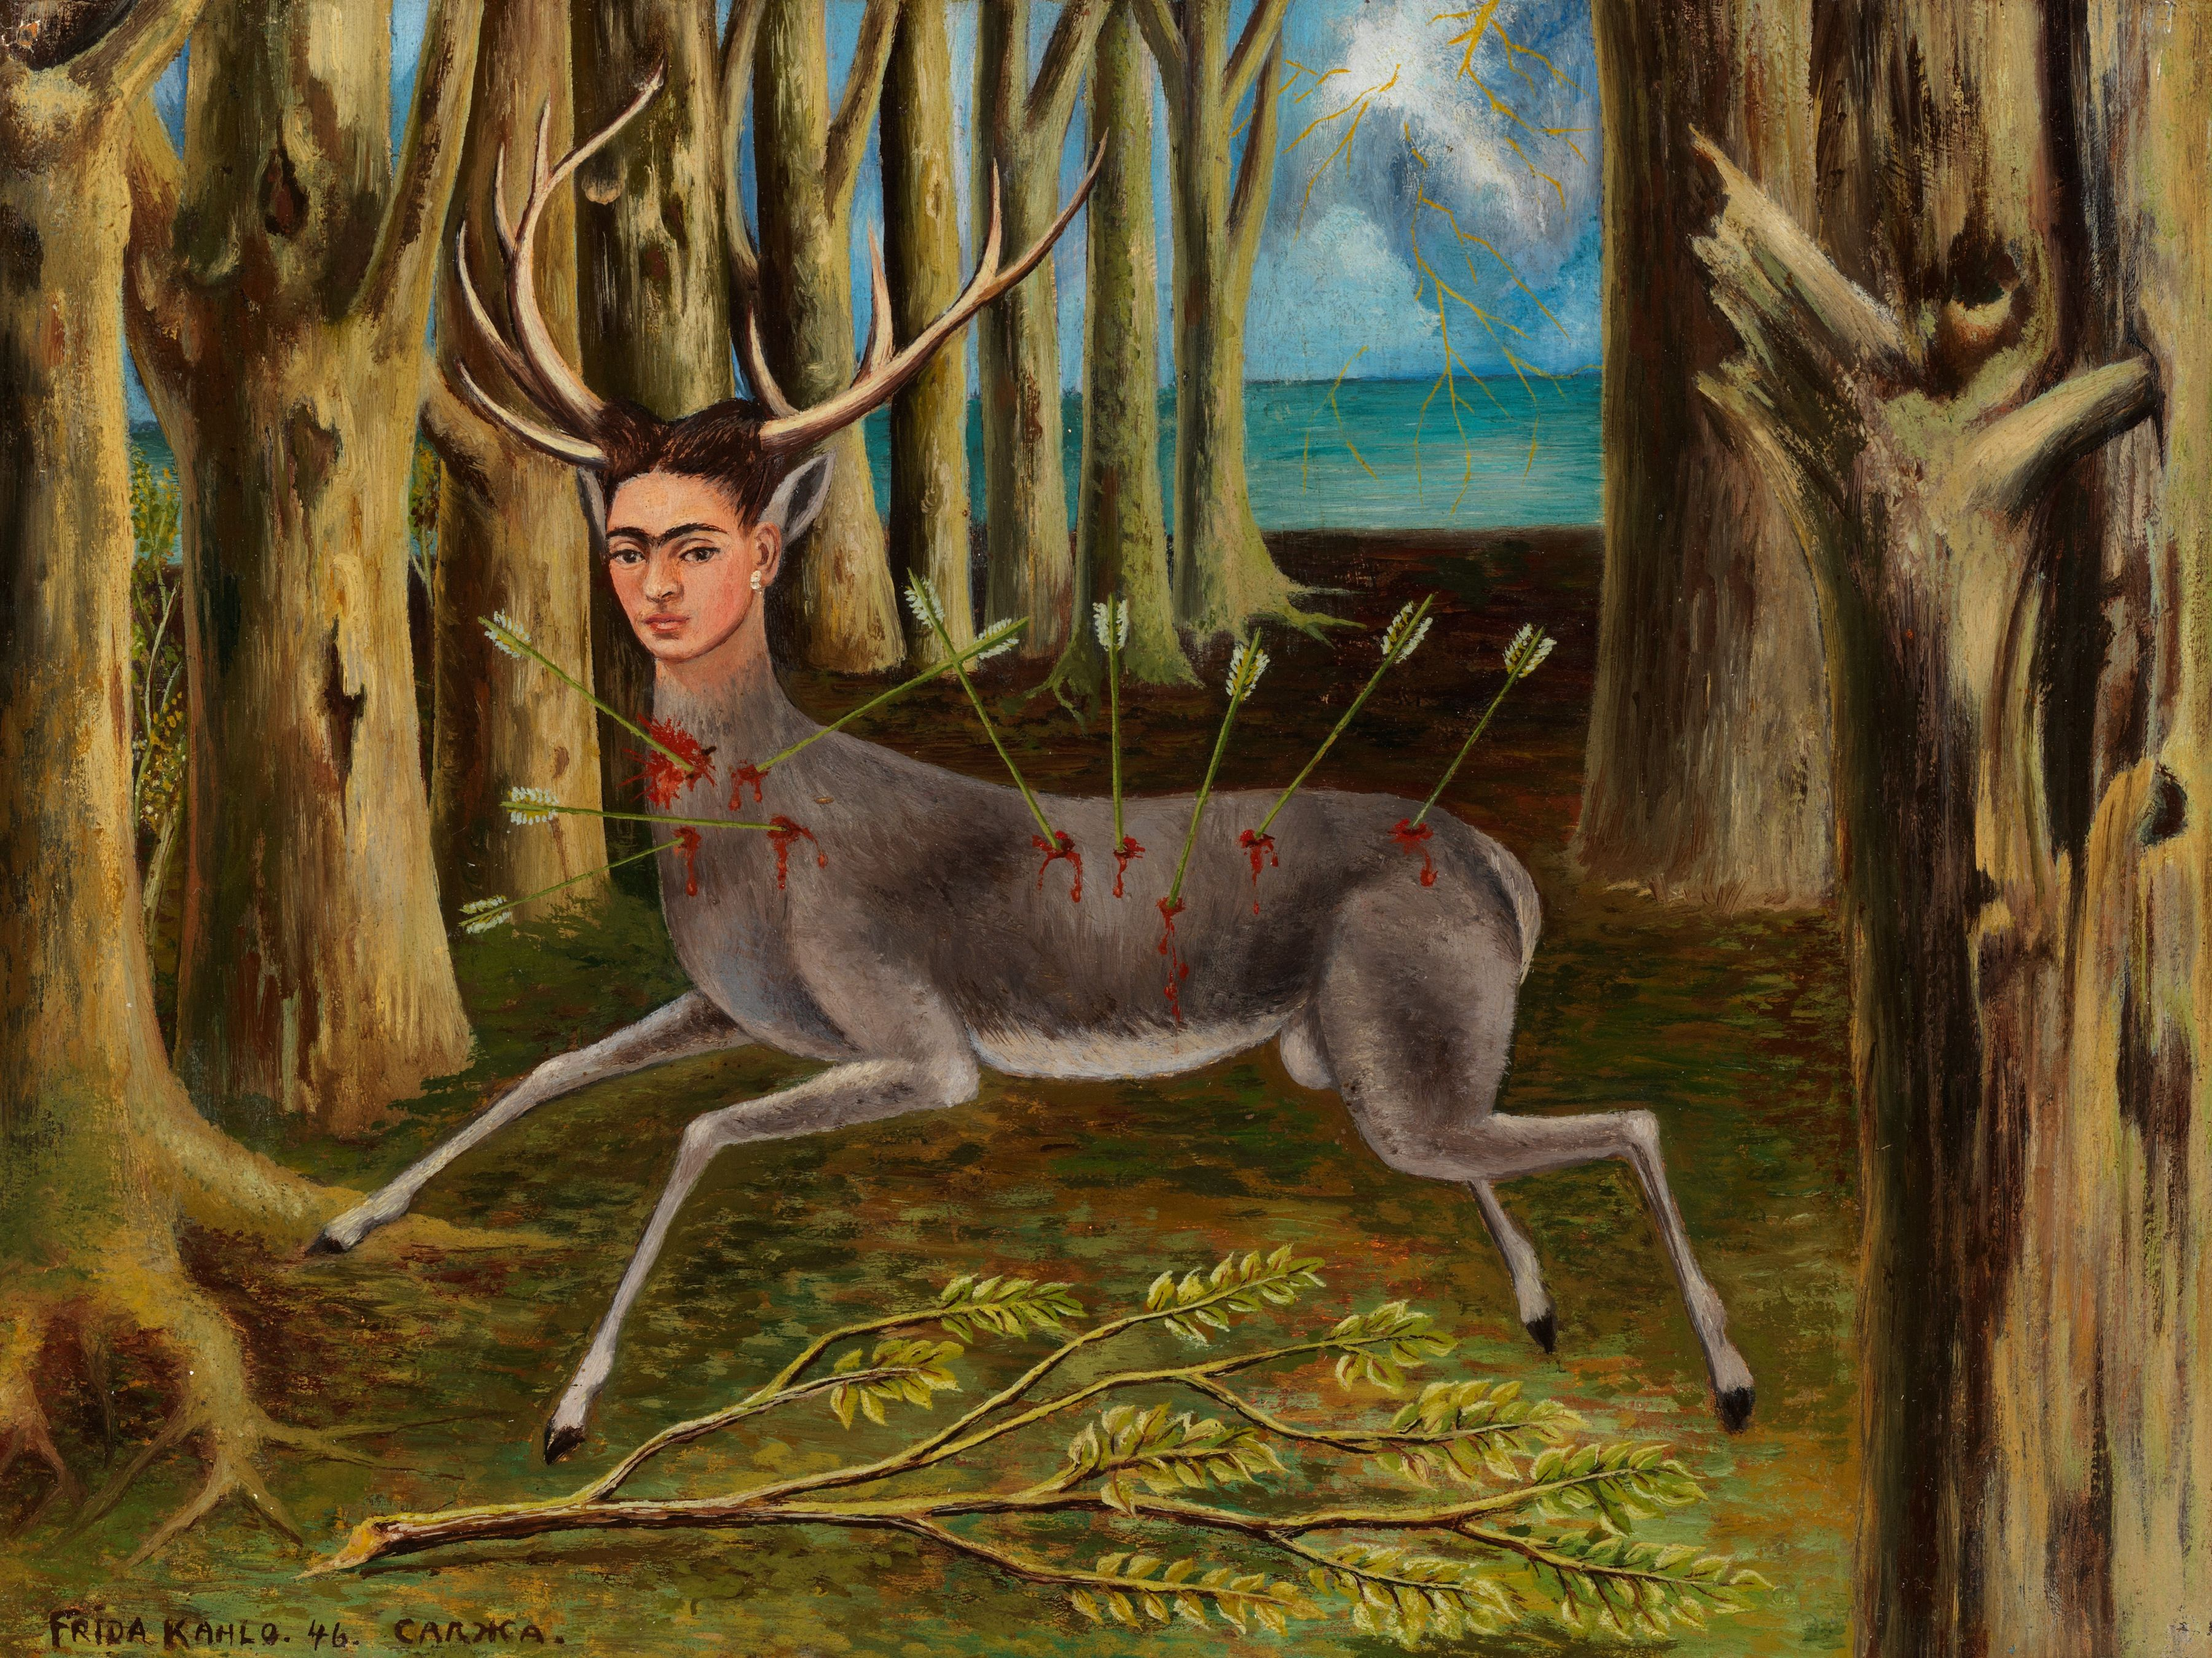 Frida Kahlo. La Venadita (The Little Deer). 1946. Oil on Masonite, 22.5 by 29.8 cm (8⅞ by 11¾ in.). Private Collection © 2019 Banco de México Diego Rivera Frida Kahlo Museums Trust, Mexico, D.F. / Artists Rights Society (ARS), New York